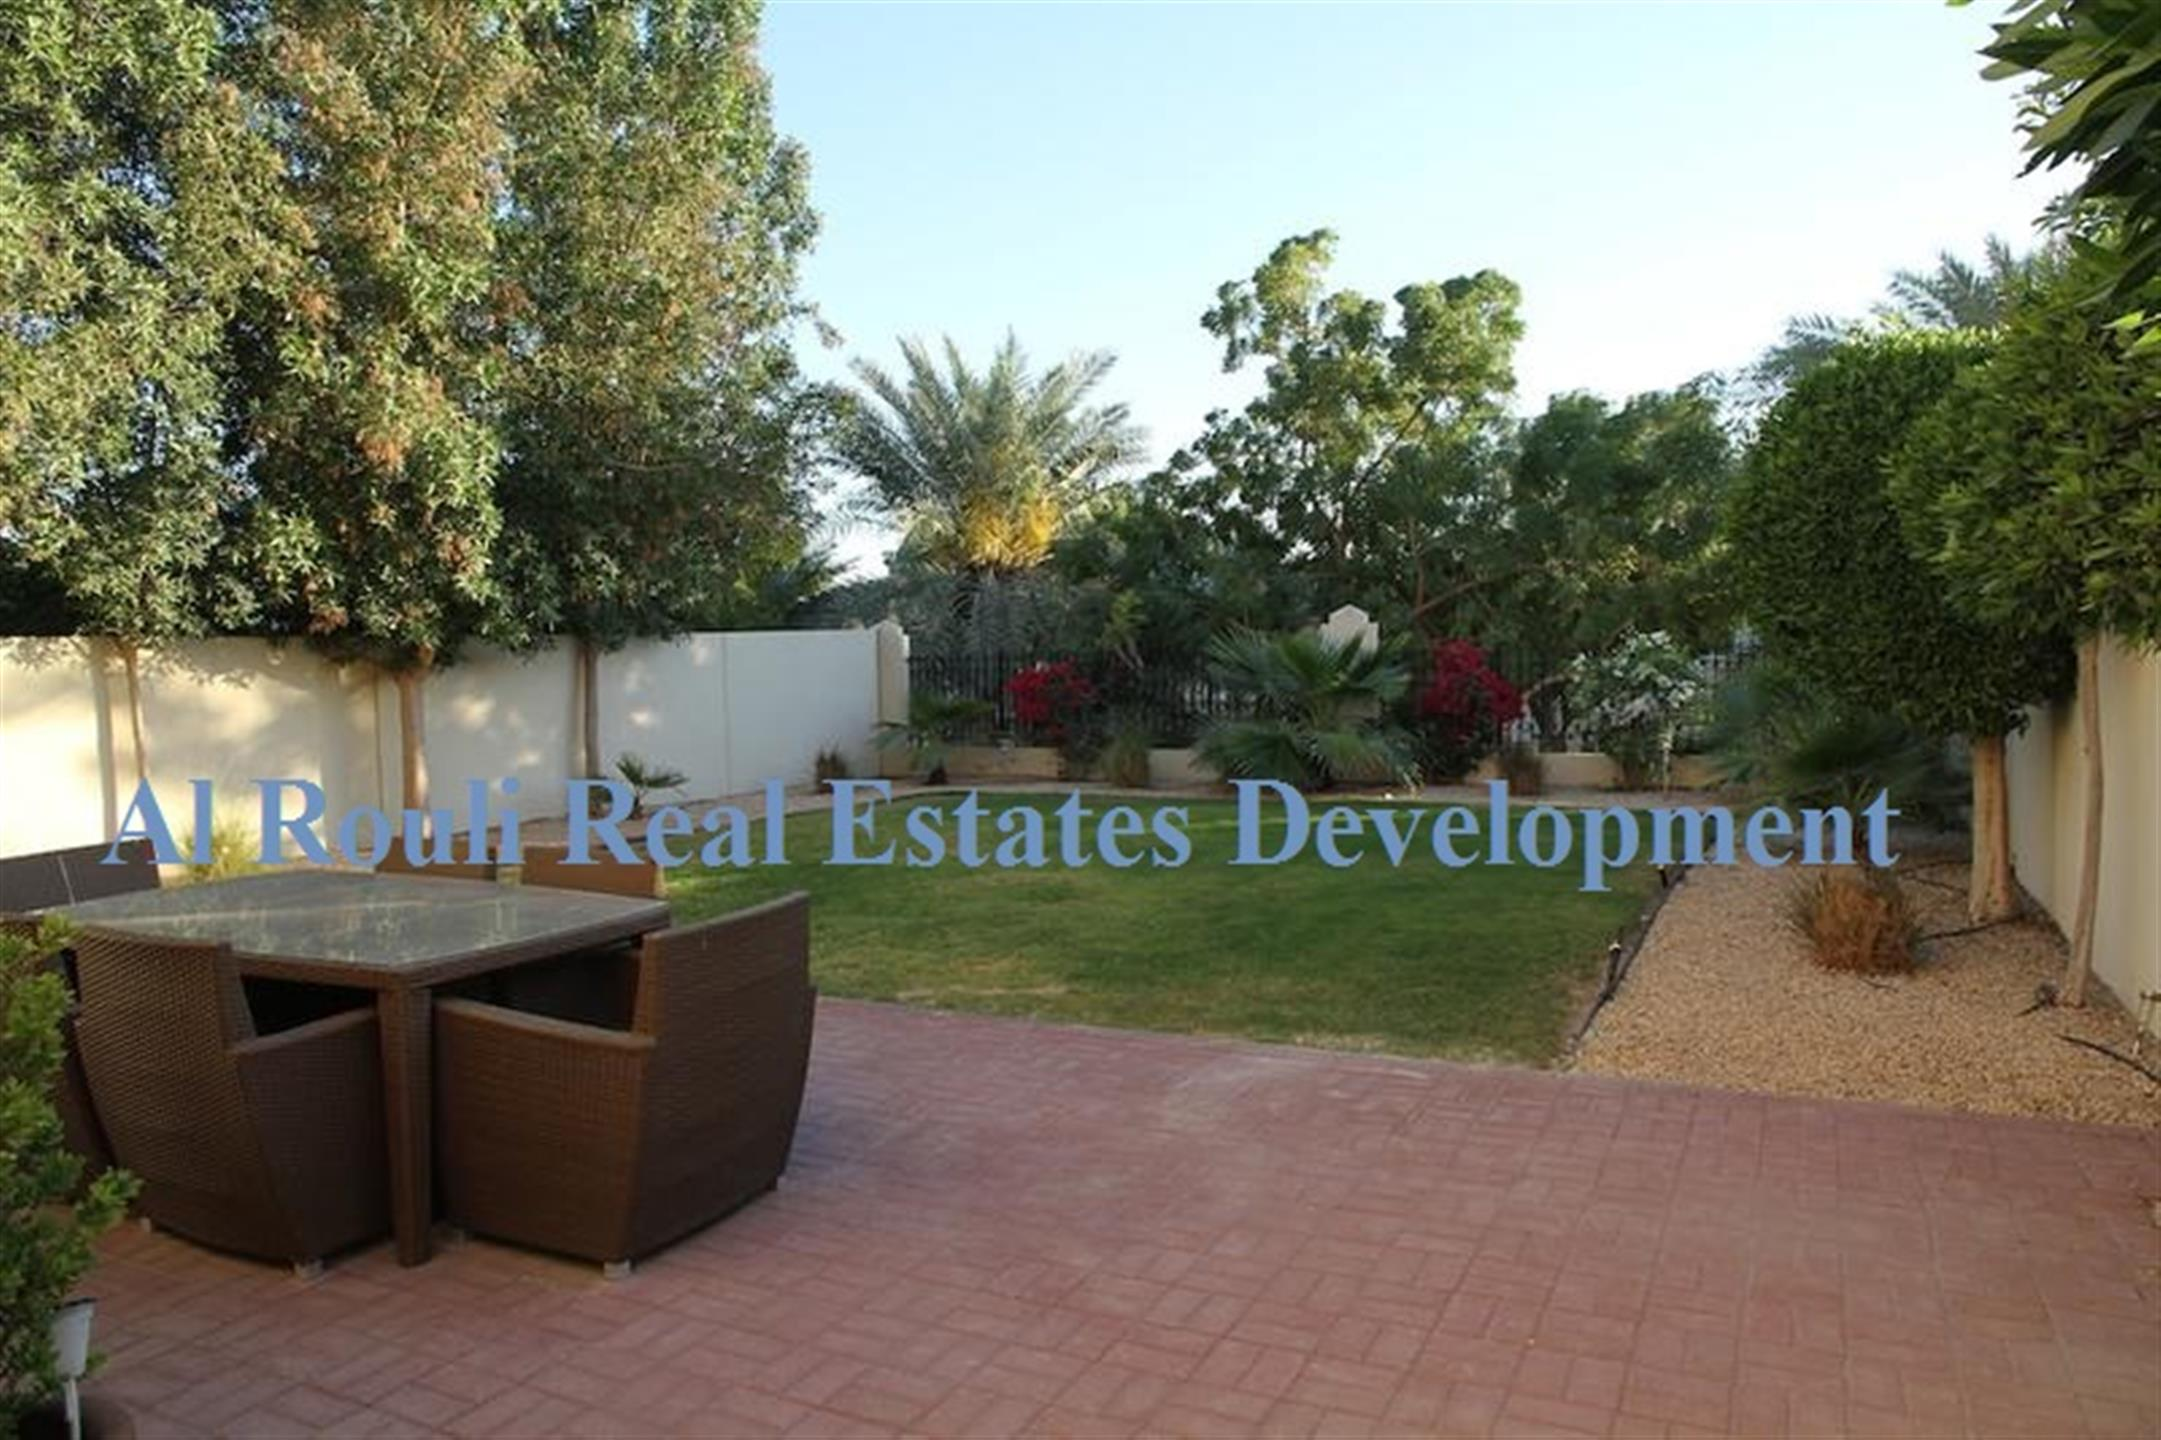 Type 2 3br+m+s Villa available for rent in Ghadeer 2, The Lakes